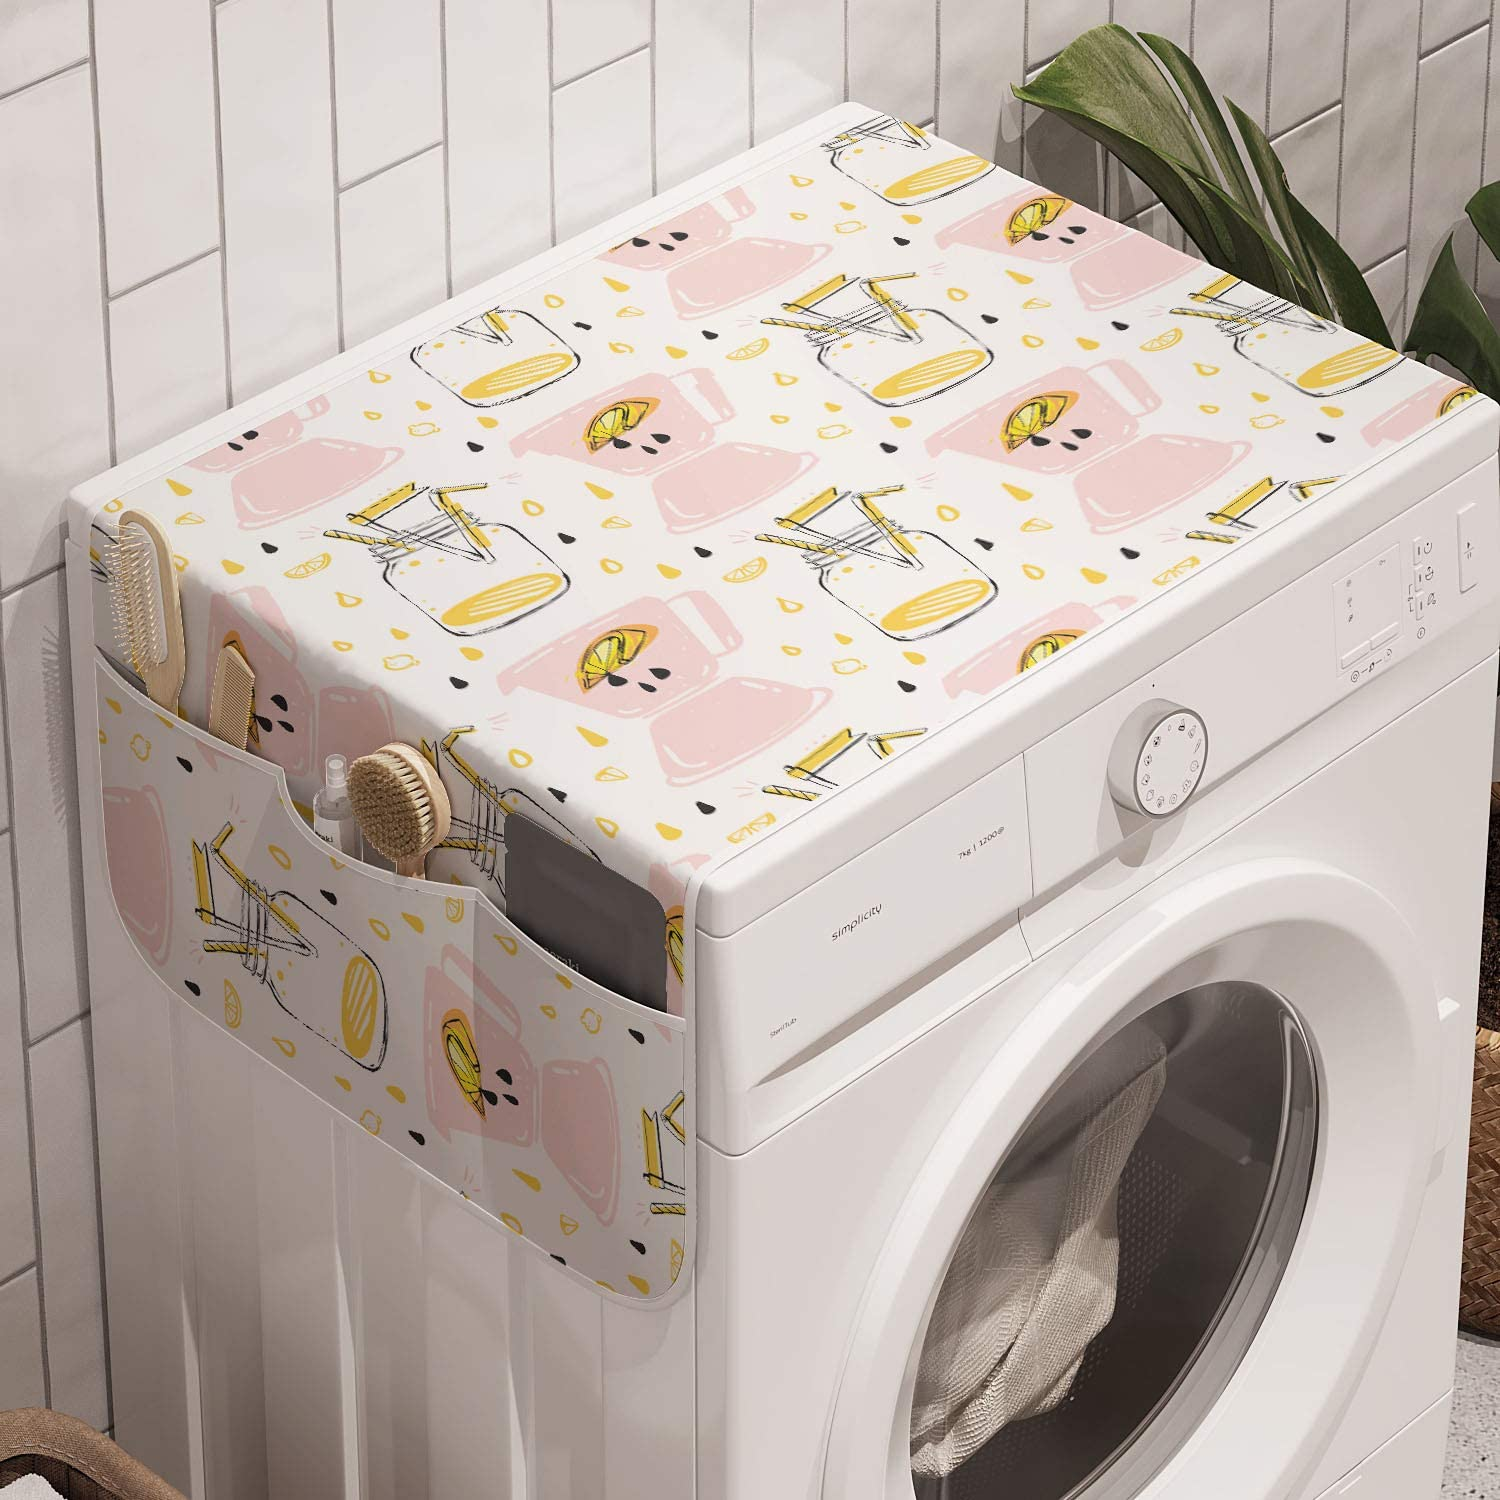 Ambesonne Summer Washing Machine Organizer, Abstract Hand Drawn Lemonade Glass Jar Lemon Slices Juice Drops and Blenders Pattern, Anti-slip Fabric Cover for Washers and Dryers, 47